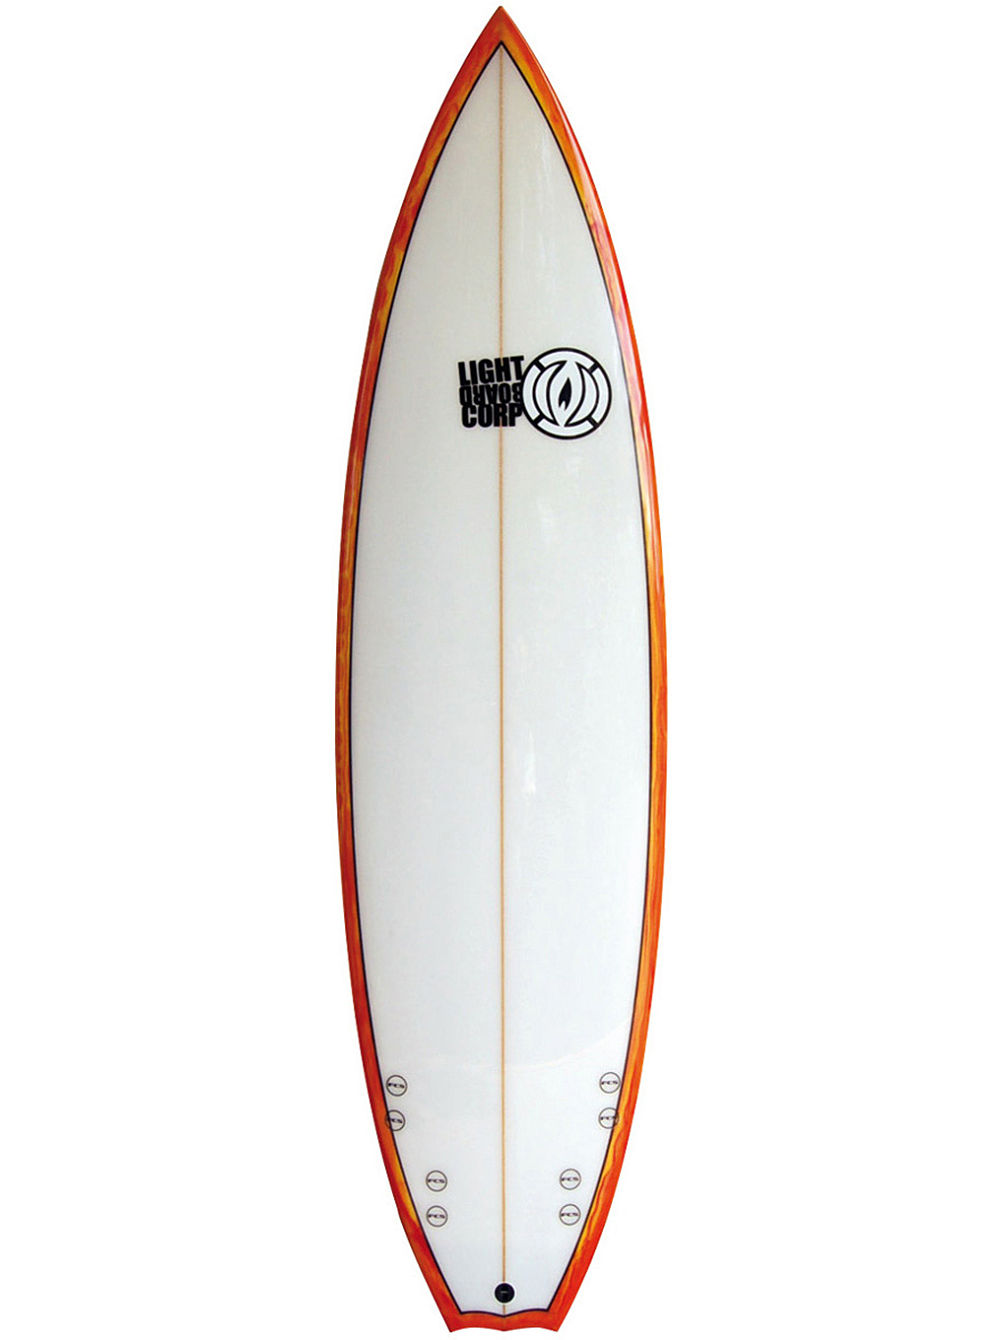 Quad Performance Shortboard 6'5 Surfboard